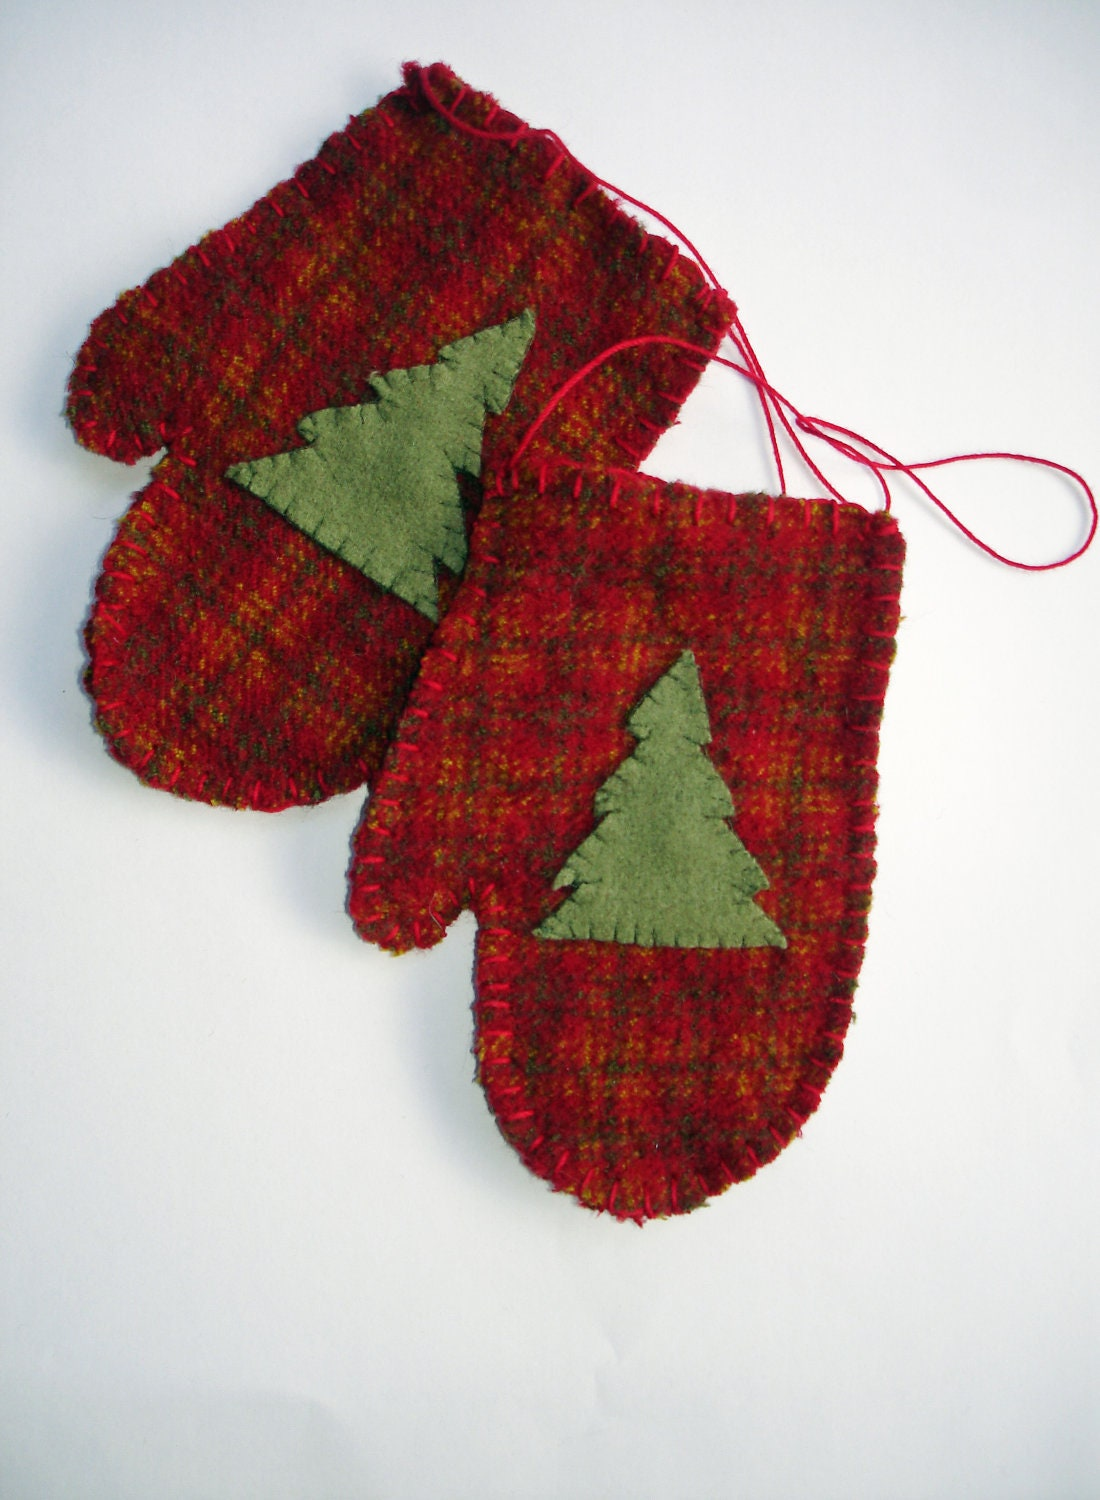 Hand Stitched Red Mitten Christmas Ornament In Plaid Upcycled